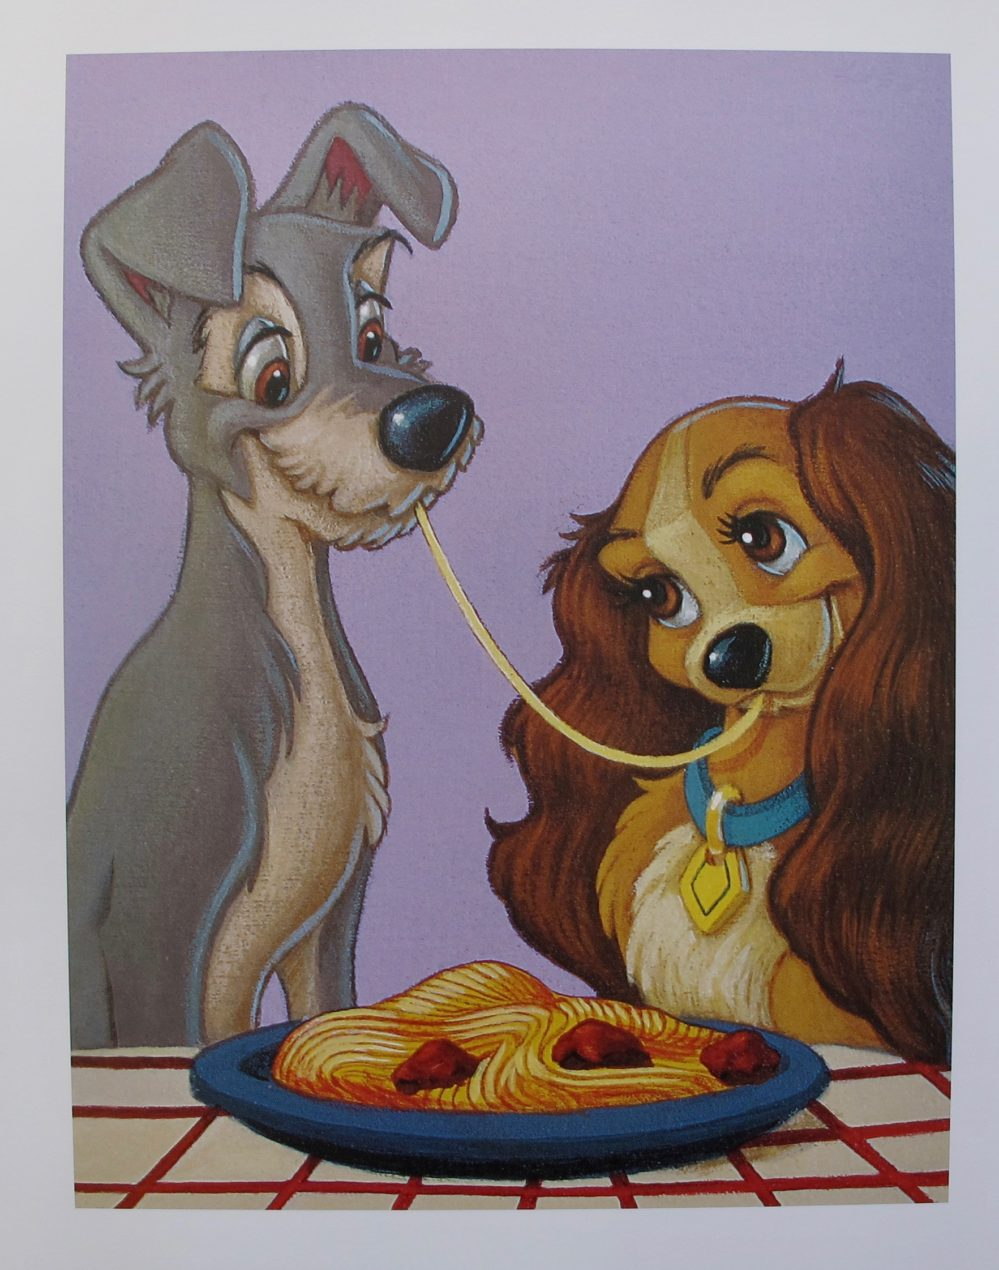 DISNEY LADY AND THE TRAMP Lithograph